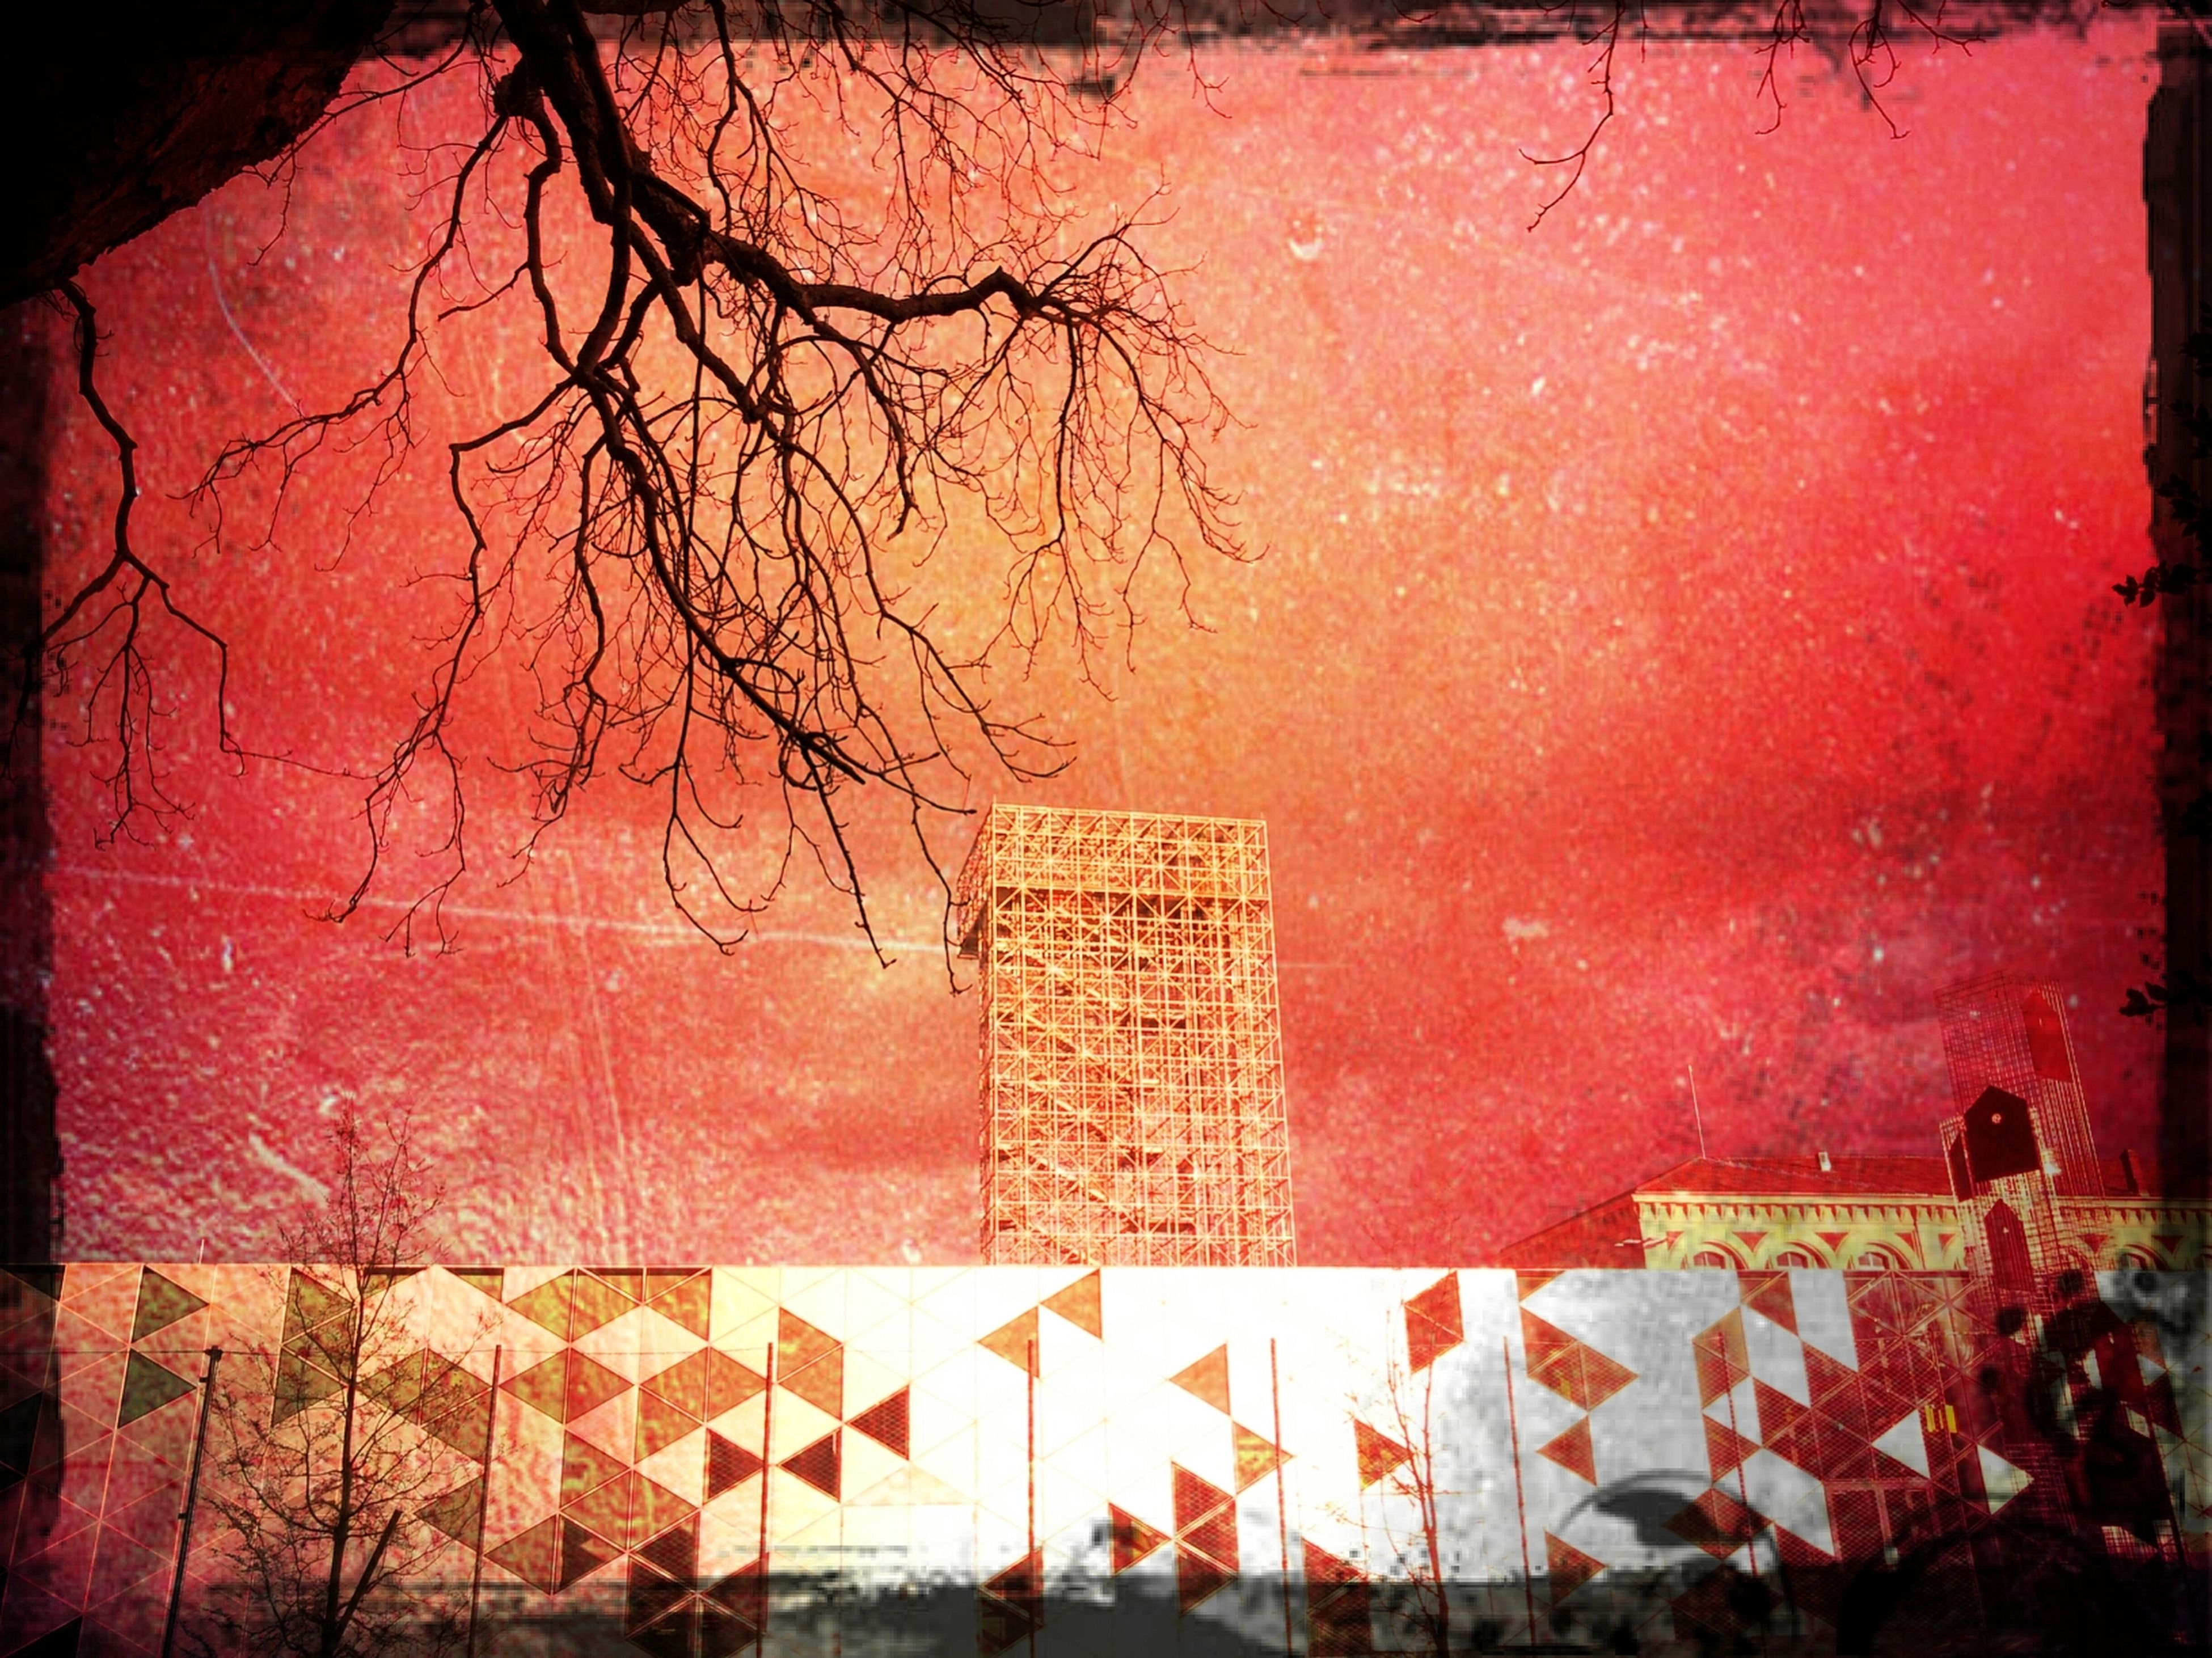 Grunge Infrared Architecture City 2.0 - The Future Of The City